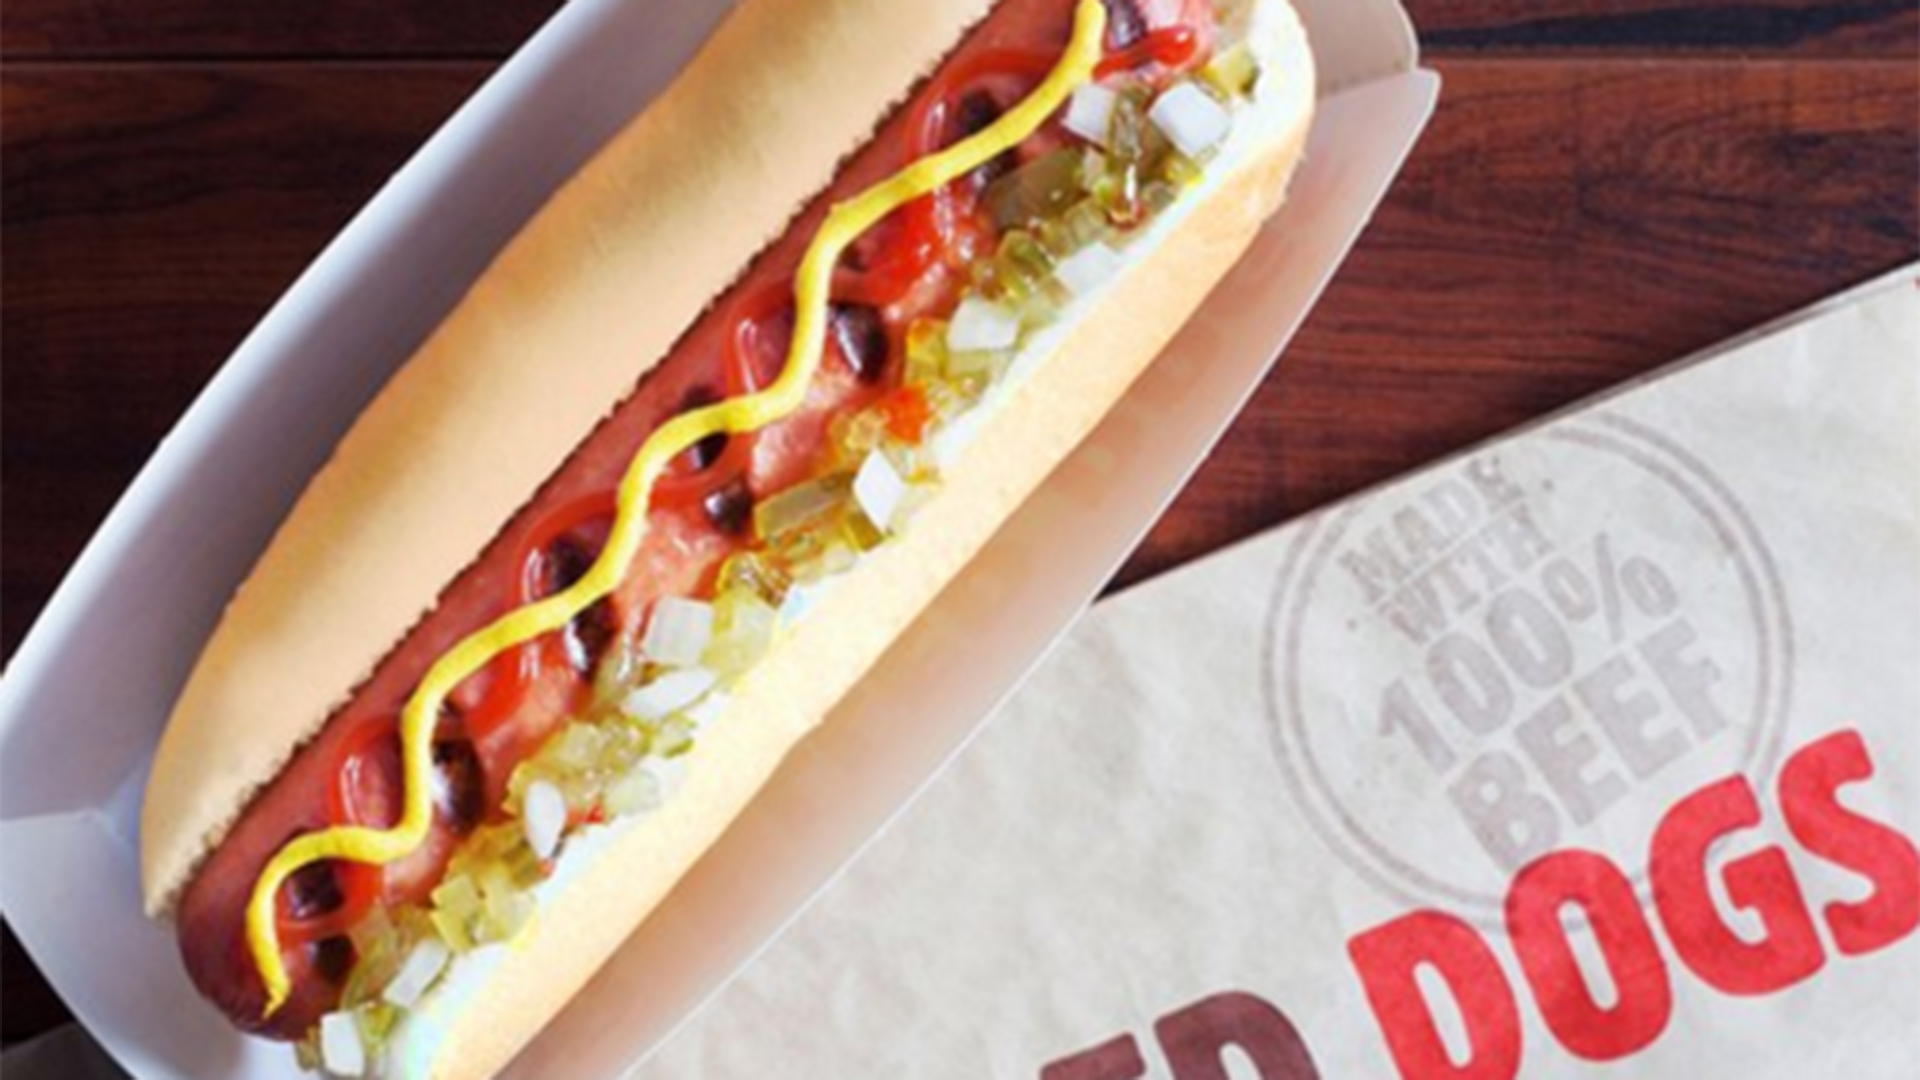 Food That Goes With Hot Dogs